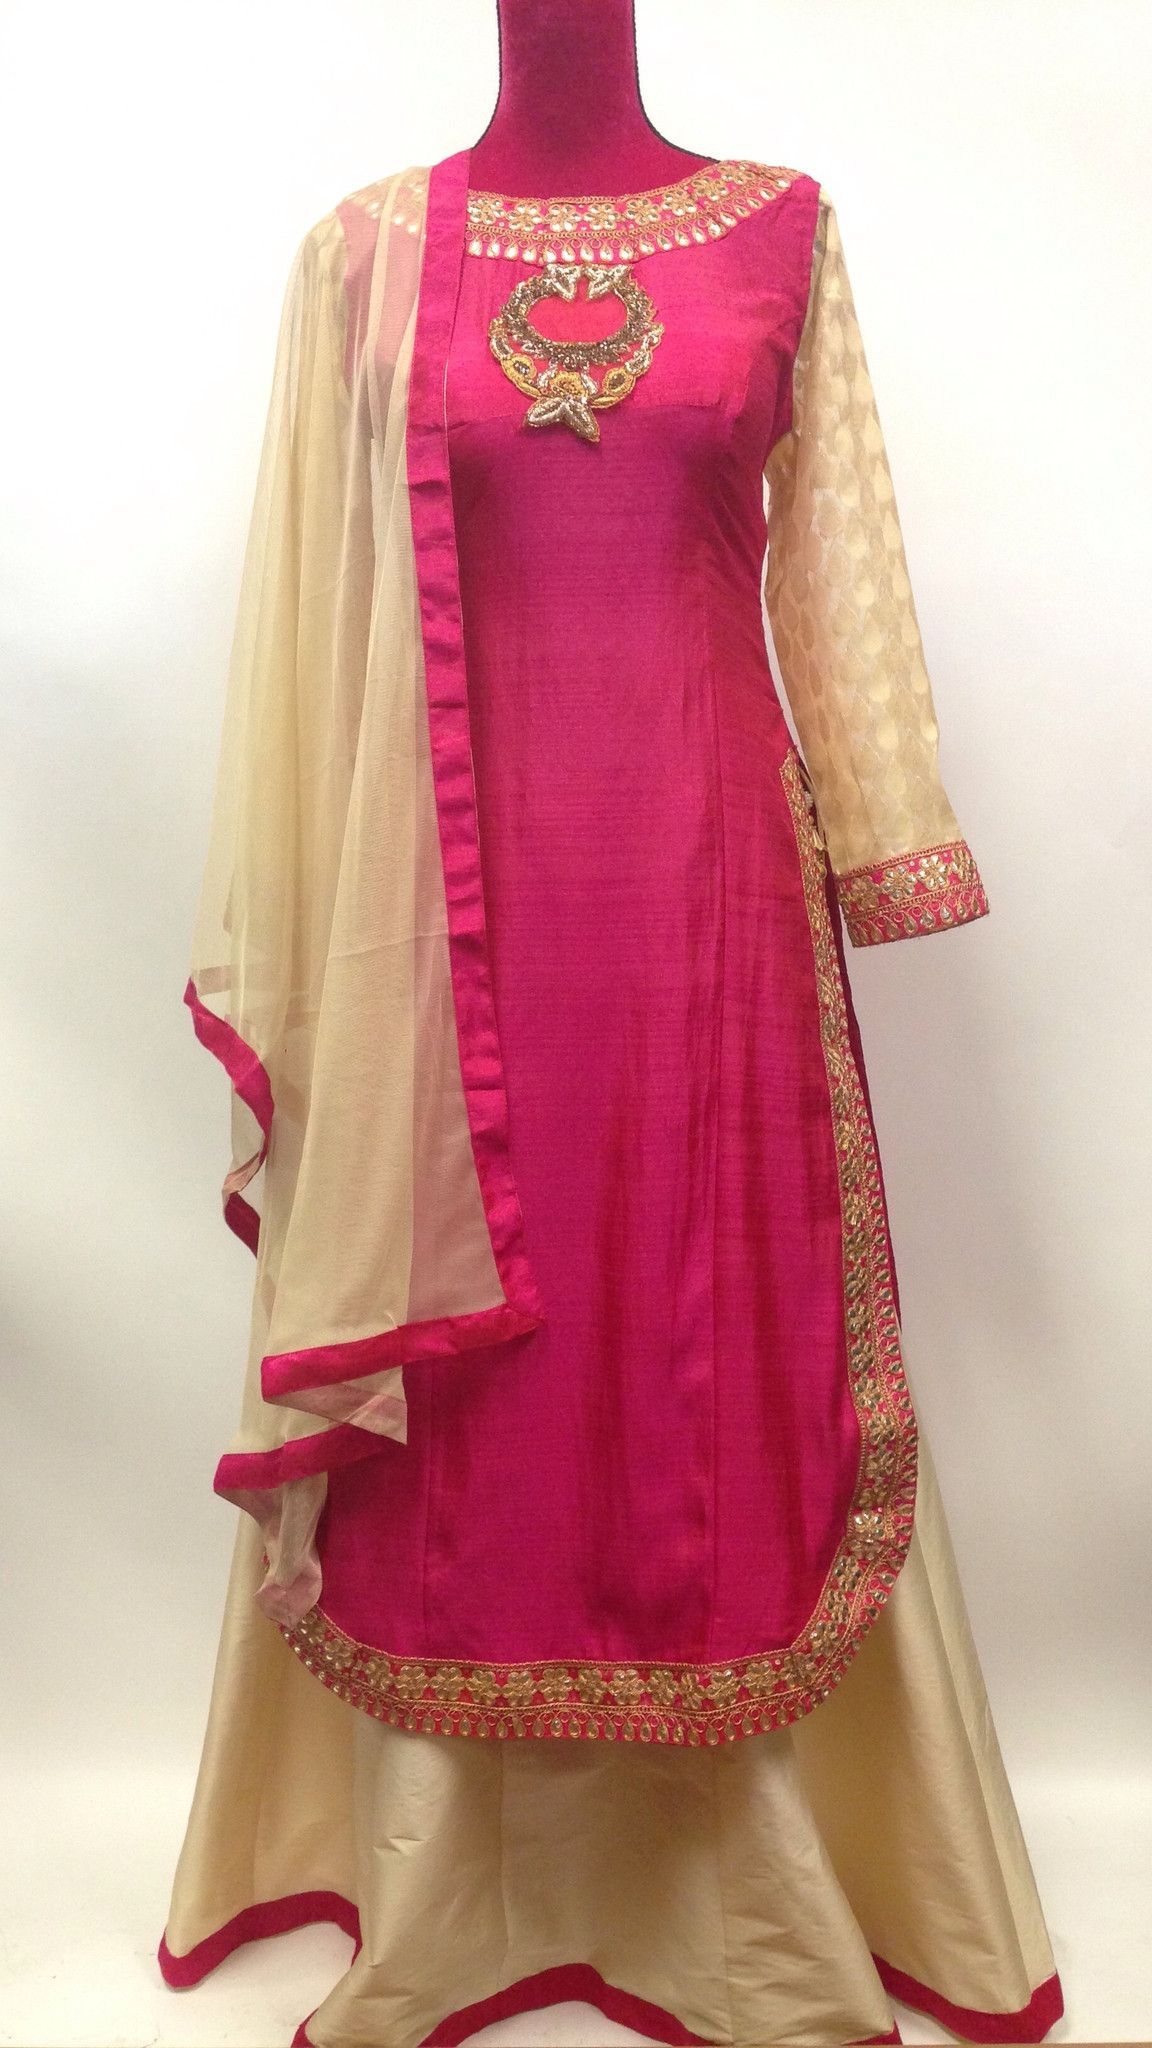 Pink and cream silk lehenga suit is made with glitzy foliage patterns  enriched with fancy thread 811523c72